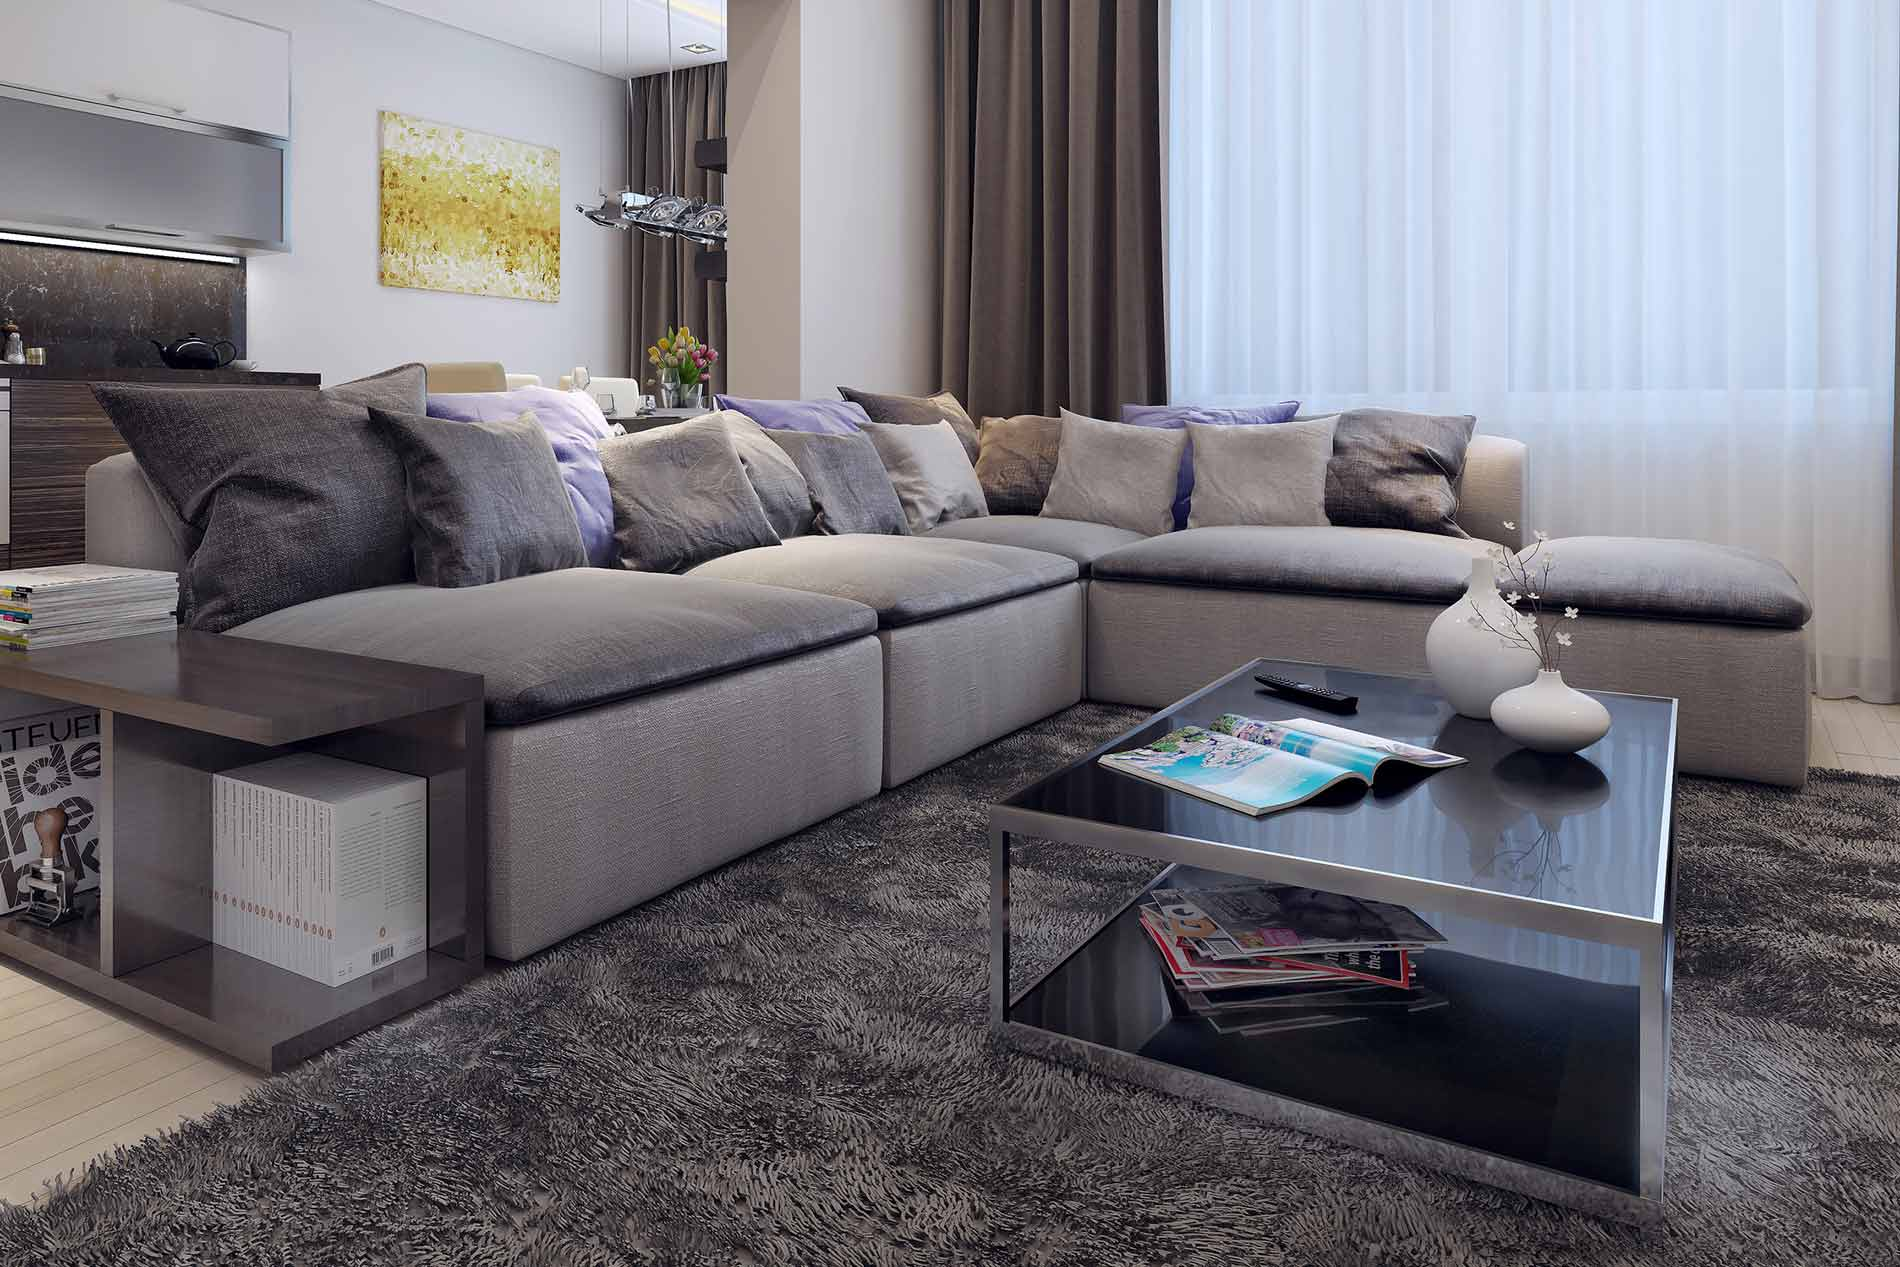 Living area cushions sofa coffee table luxury